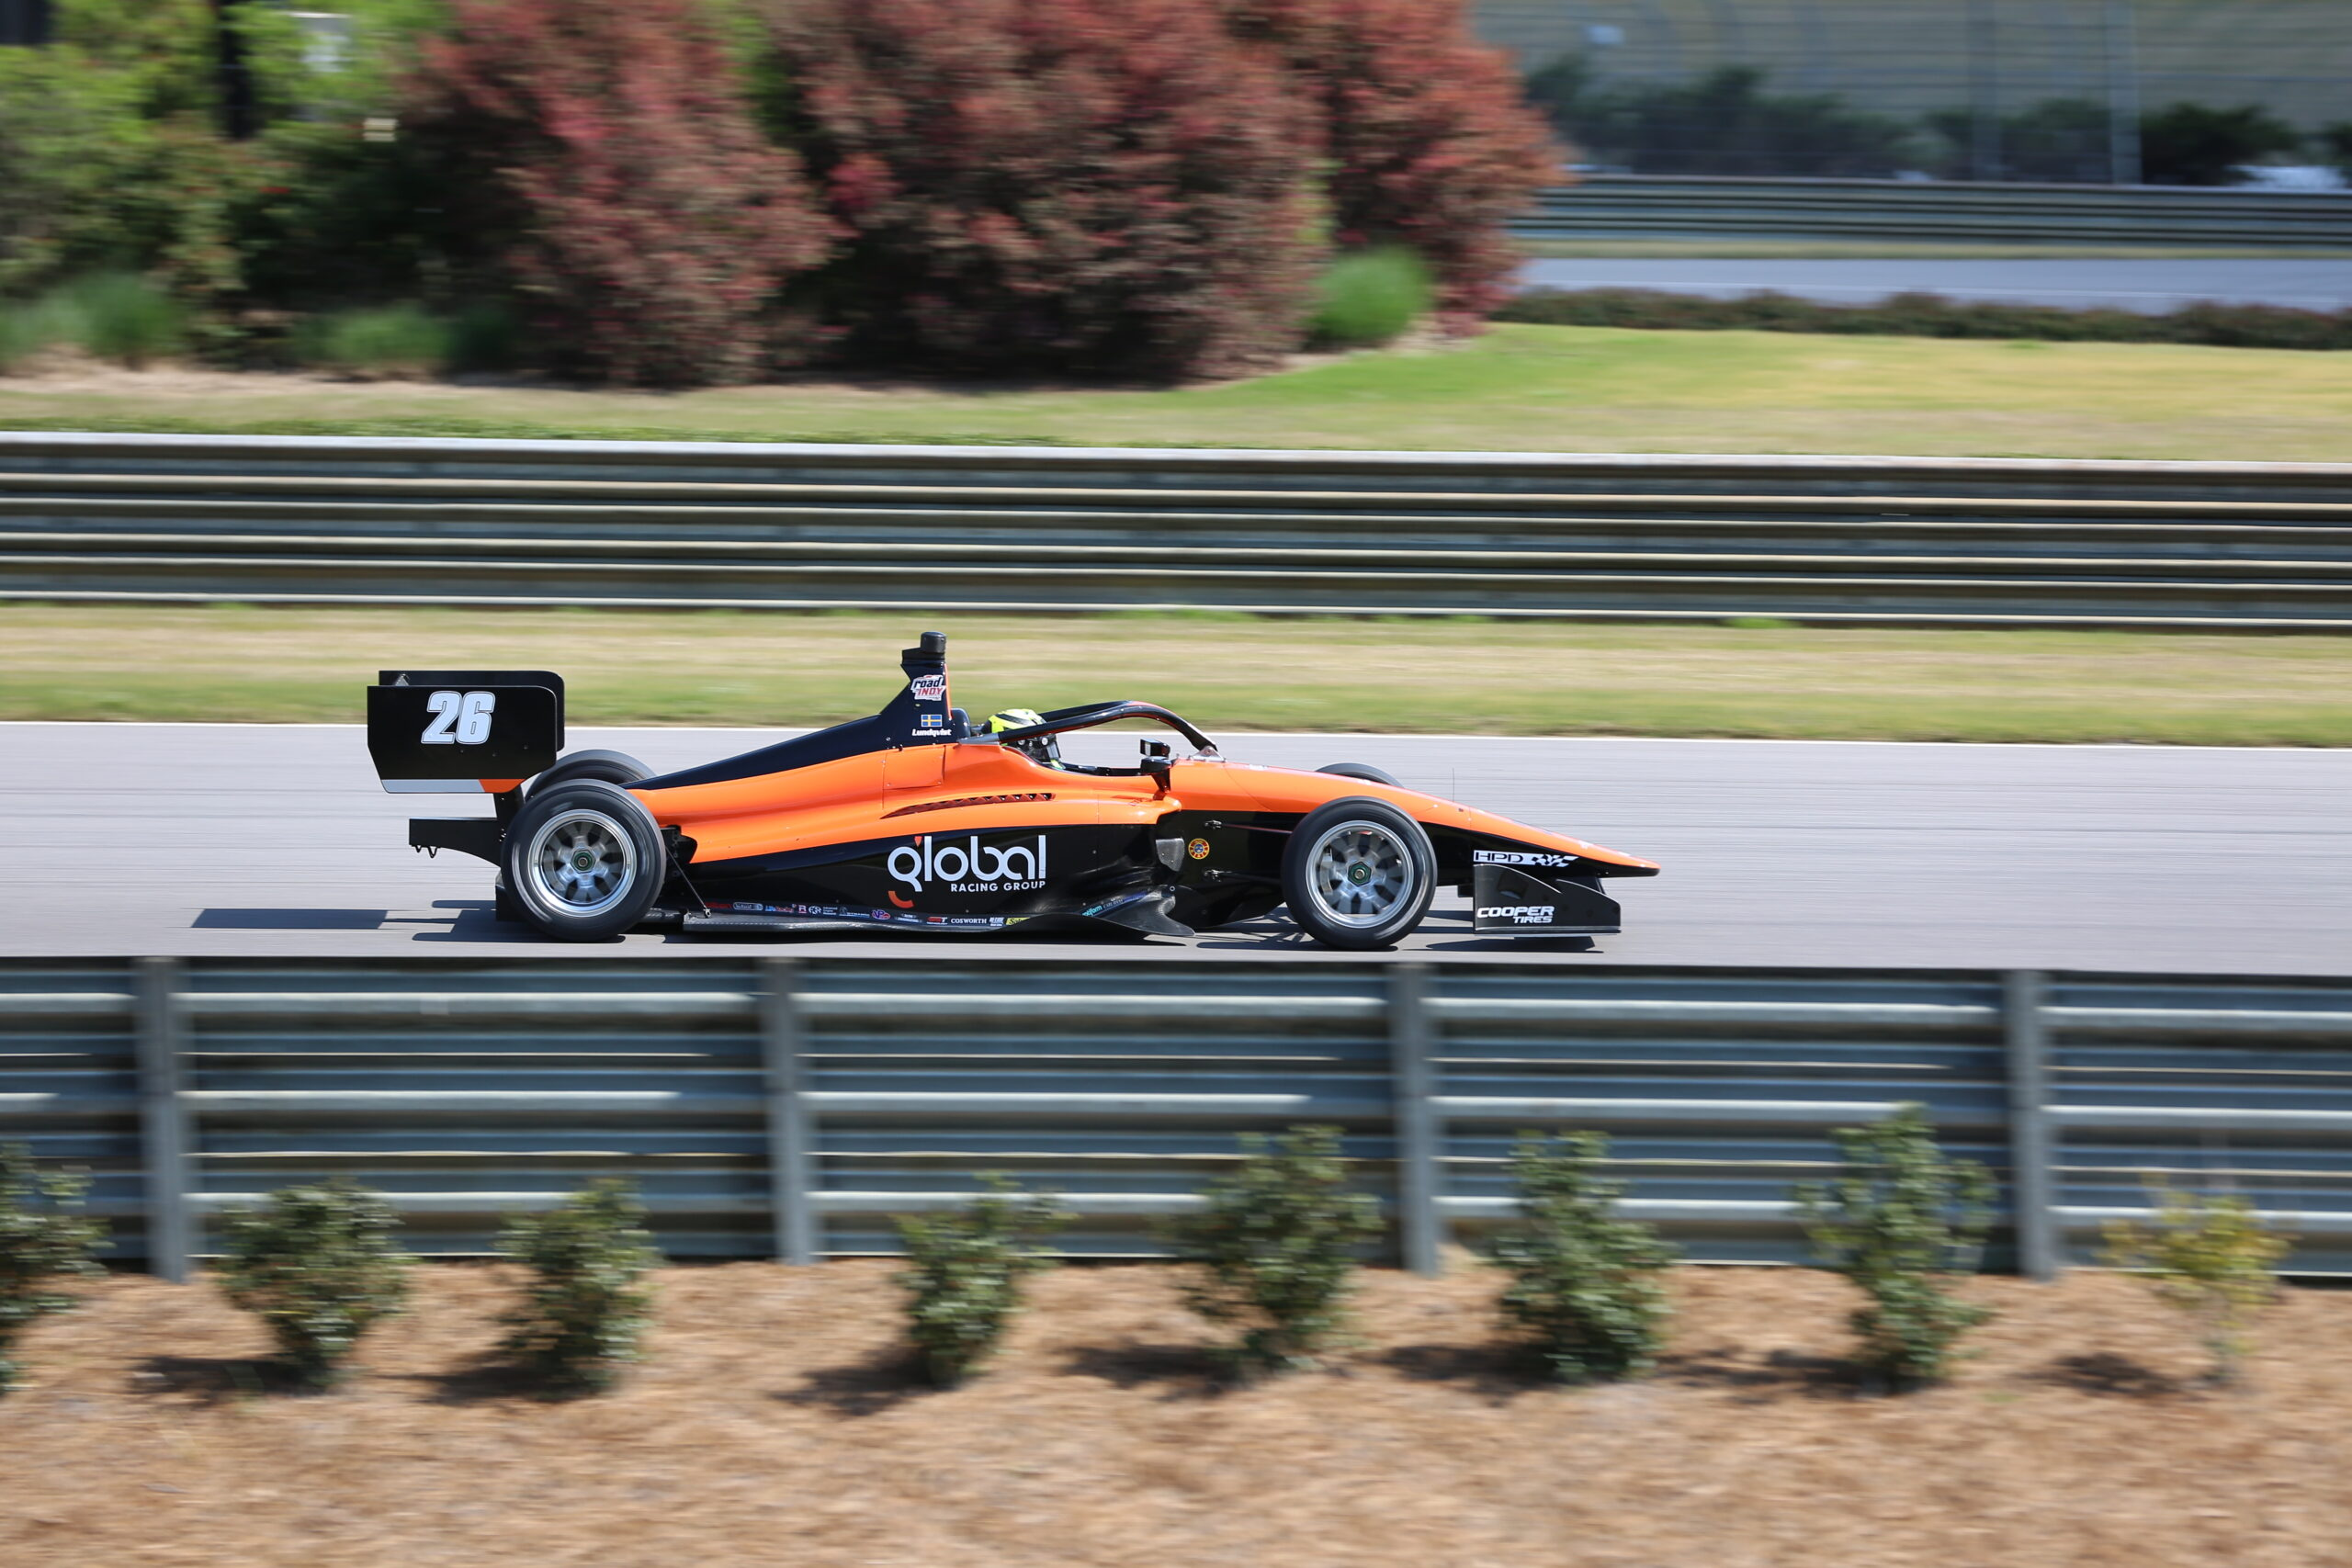 2IndyLights-395